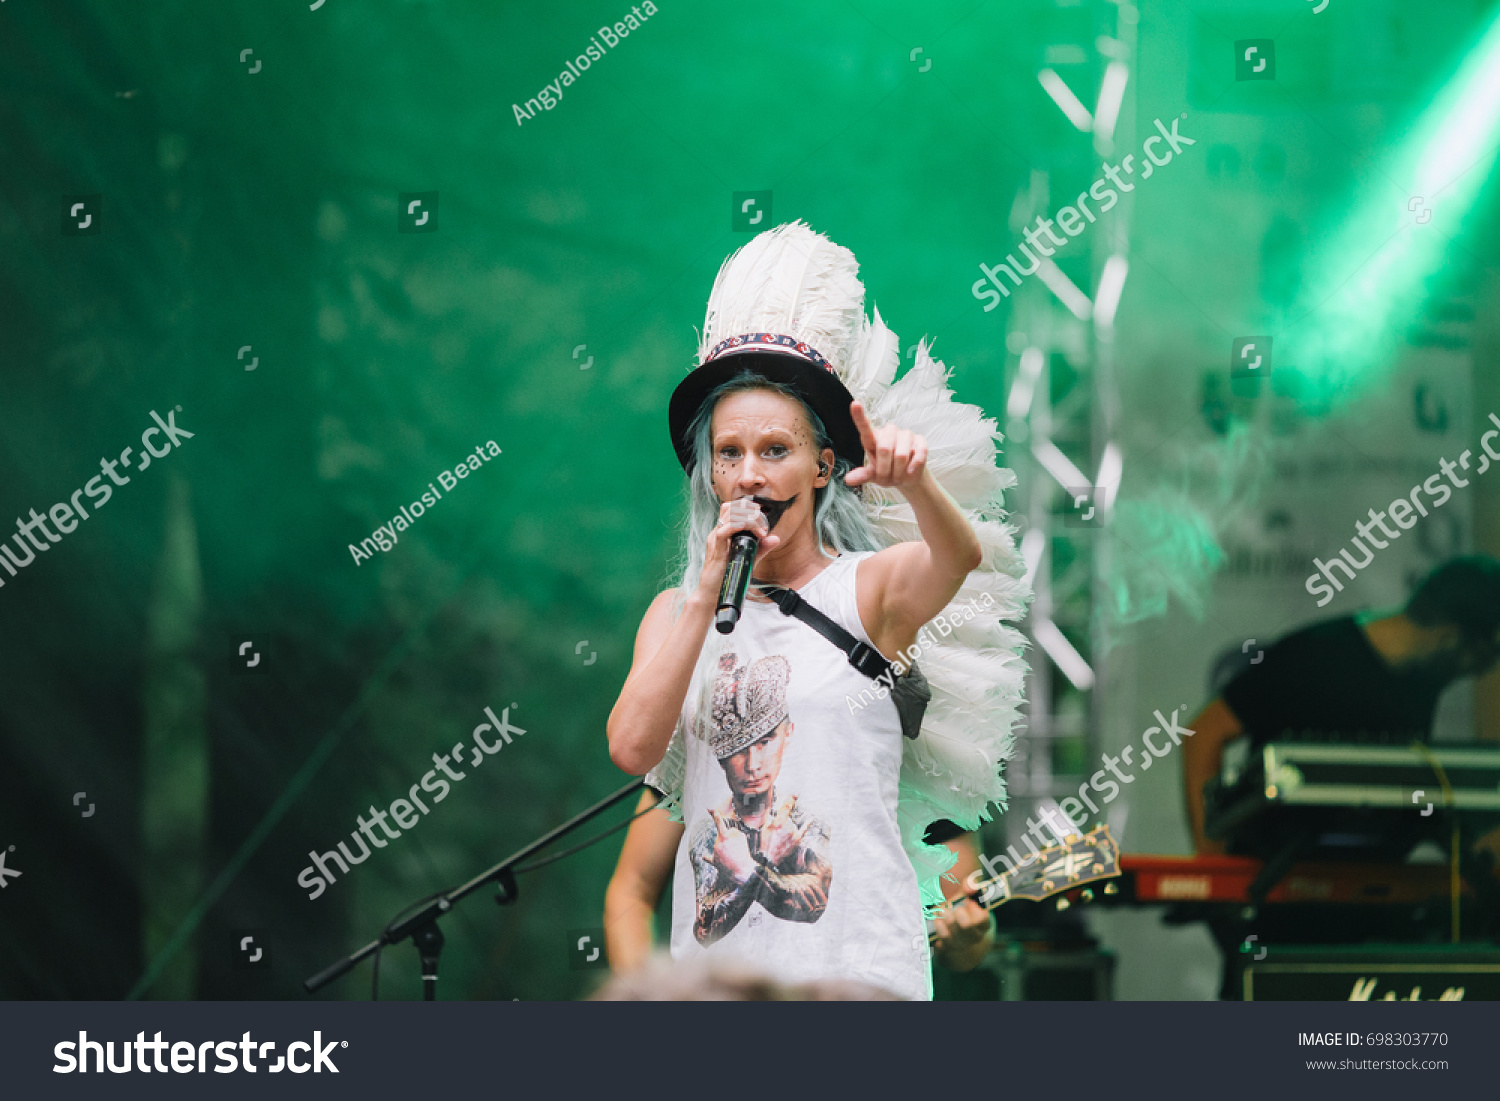 Clujnapoca Romania August 16 2017 Pasztor The Arts Stock Image 698303770